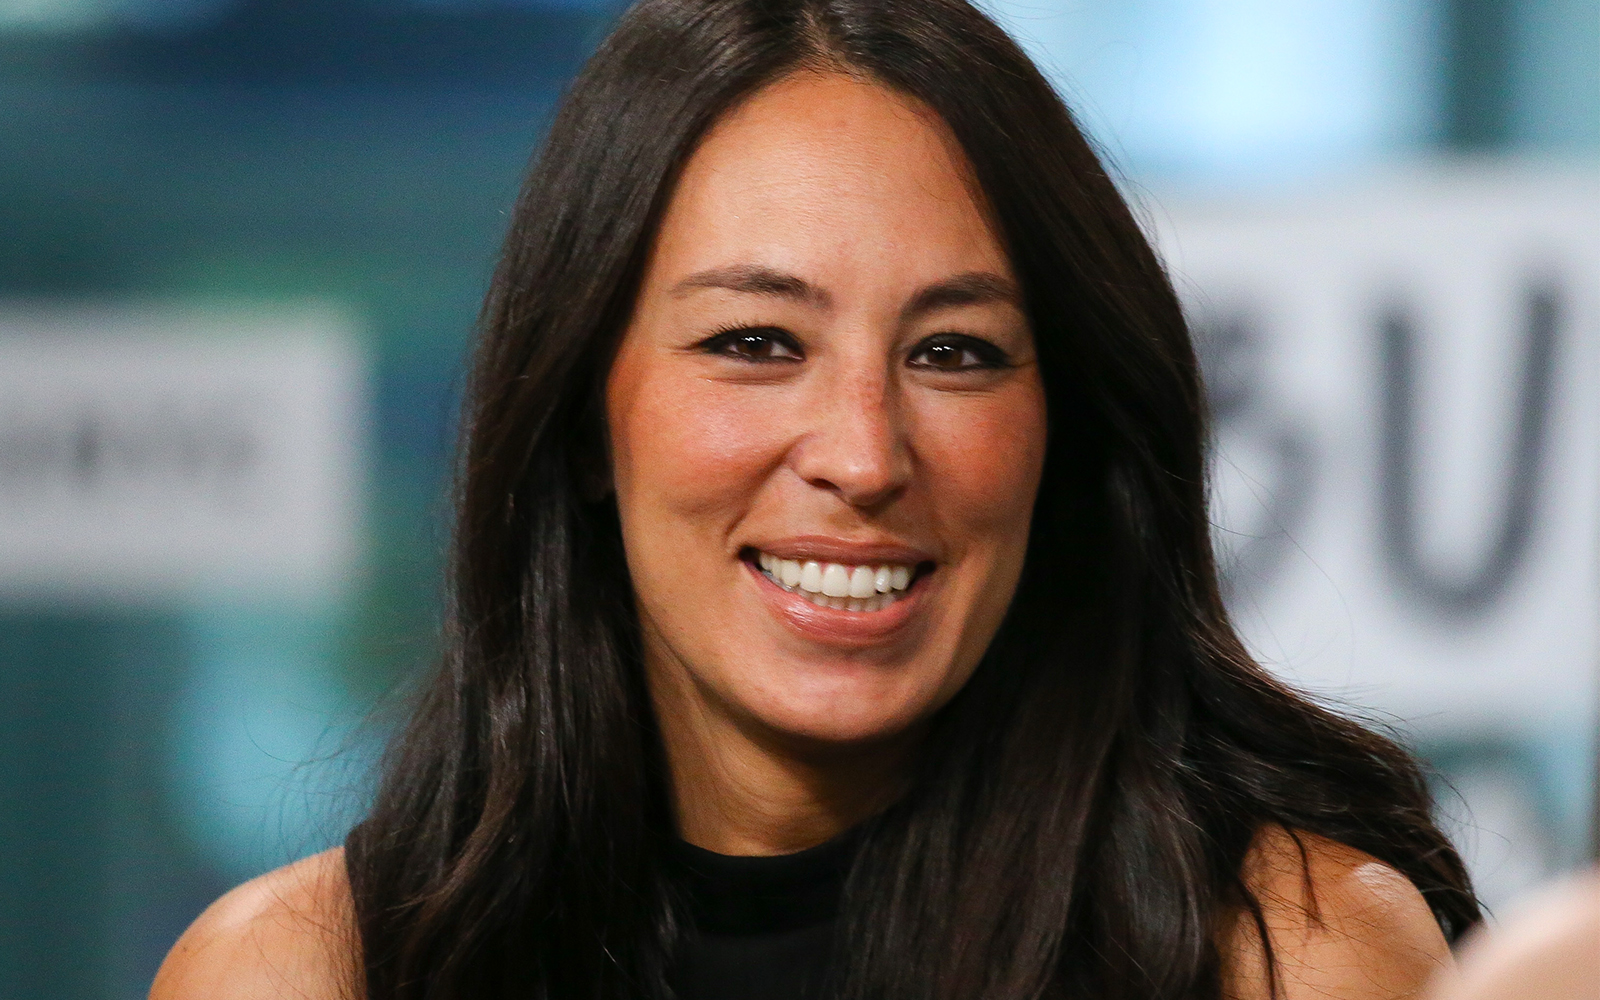 Joanna Gaines' Favorite Birkenstocks Have Almost 1,200 Near-perfect Reviews on Zappos